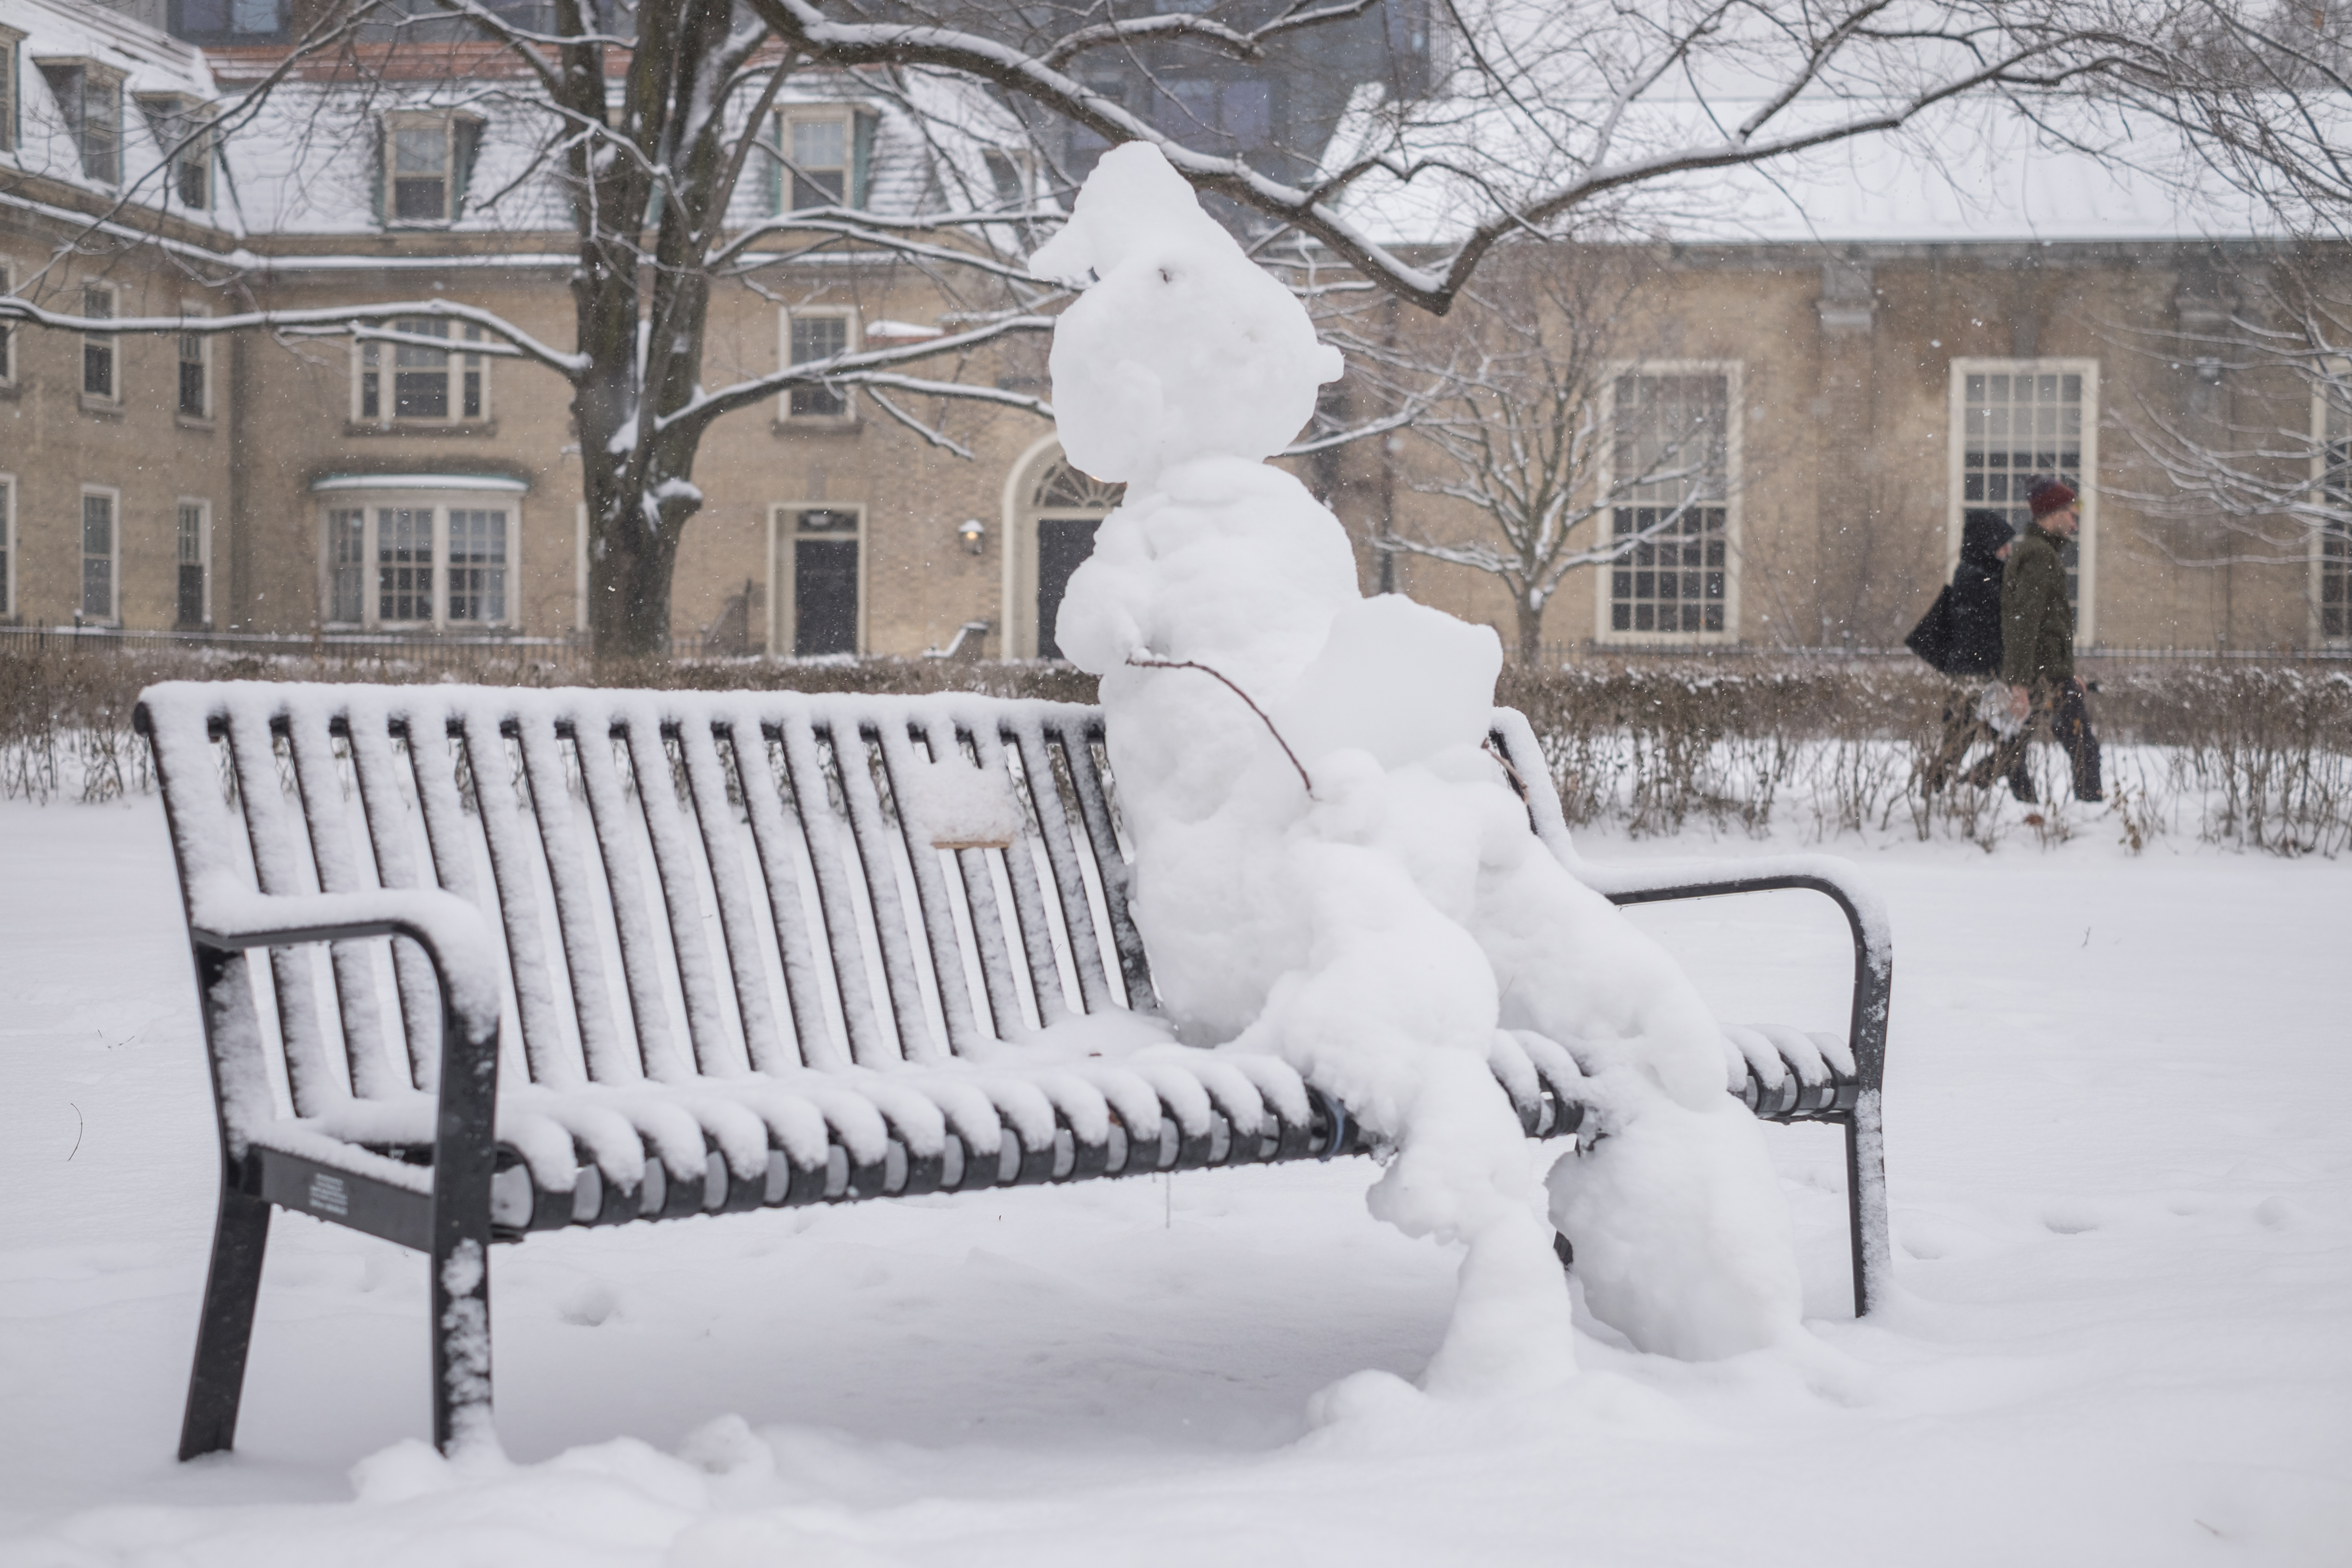 Snowman on a Bench on Campus